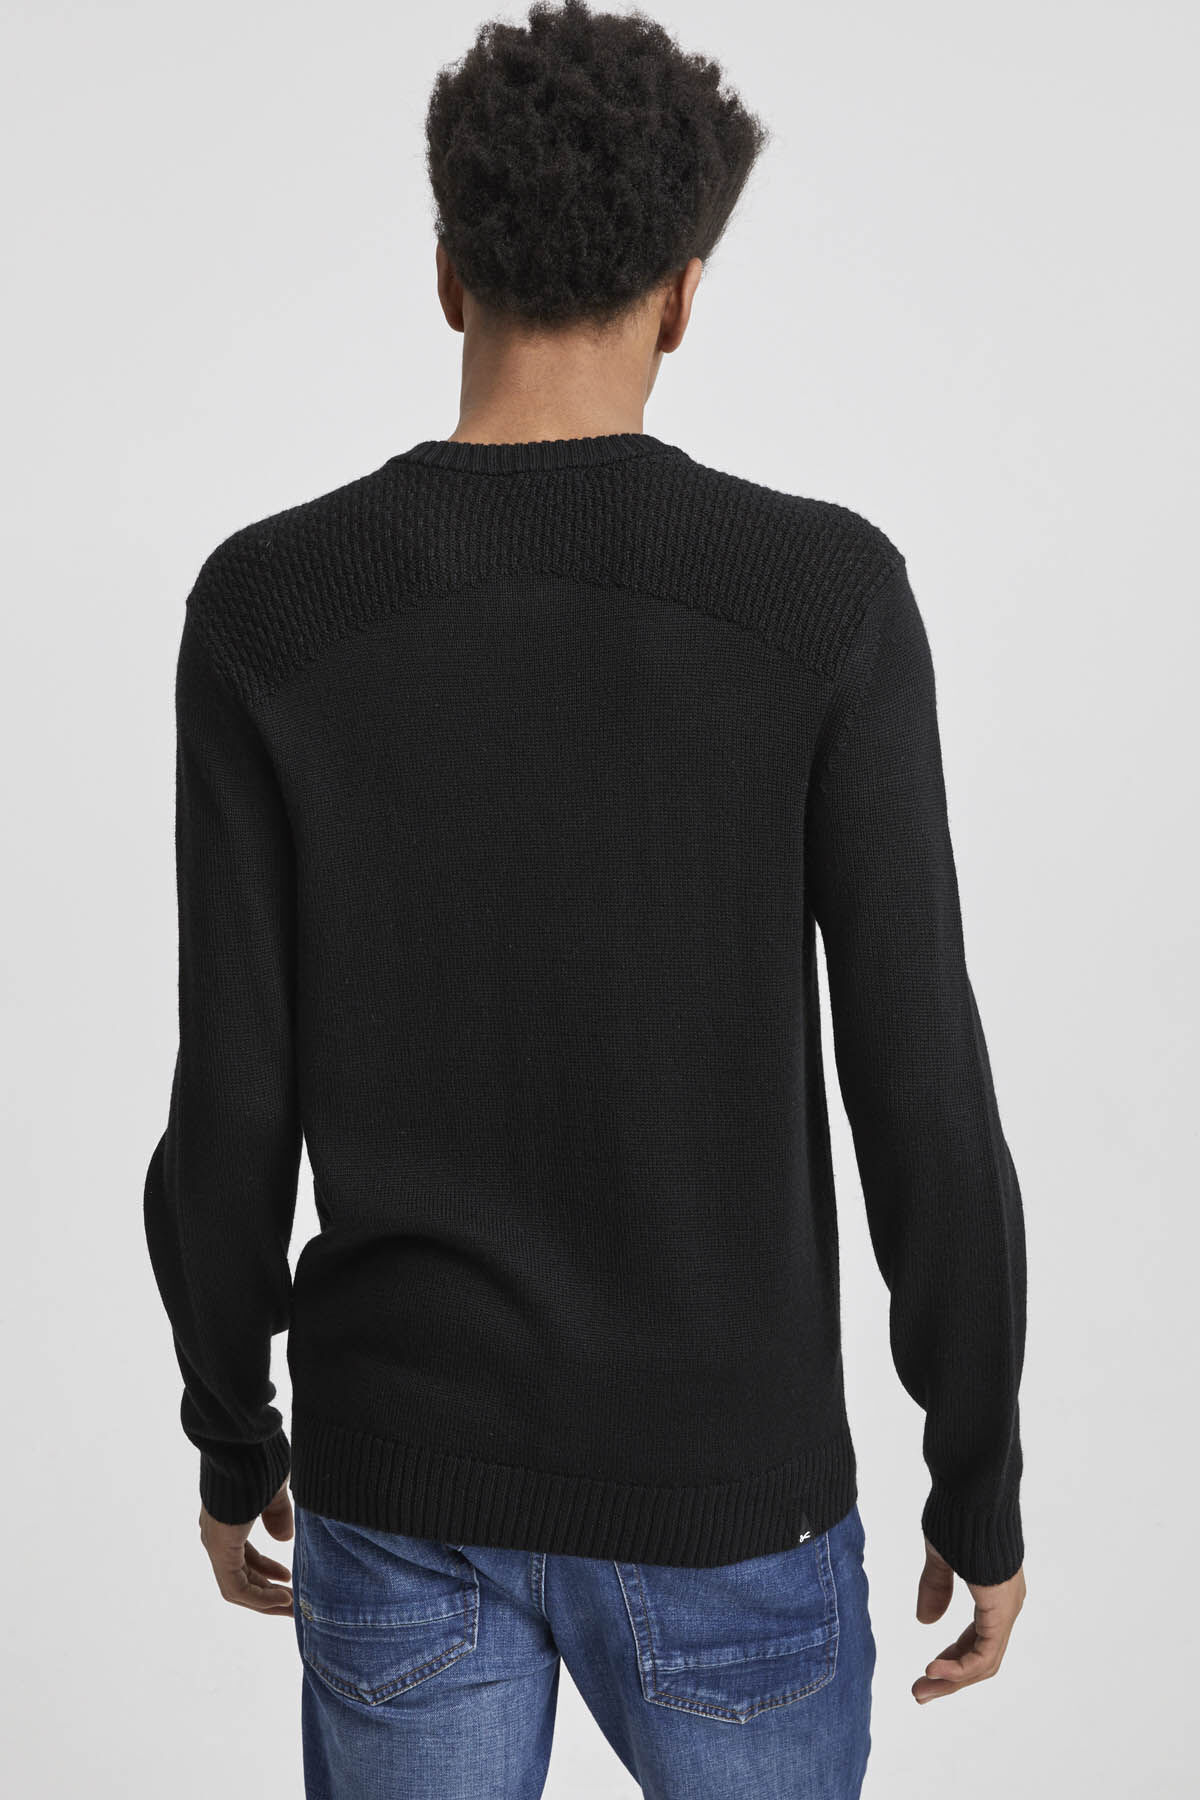 AK KNIT HALF ZIP Wool Blend - Regular Fit